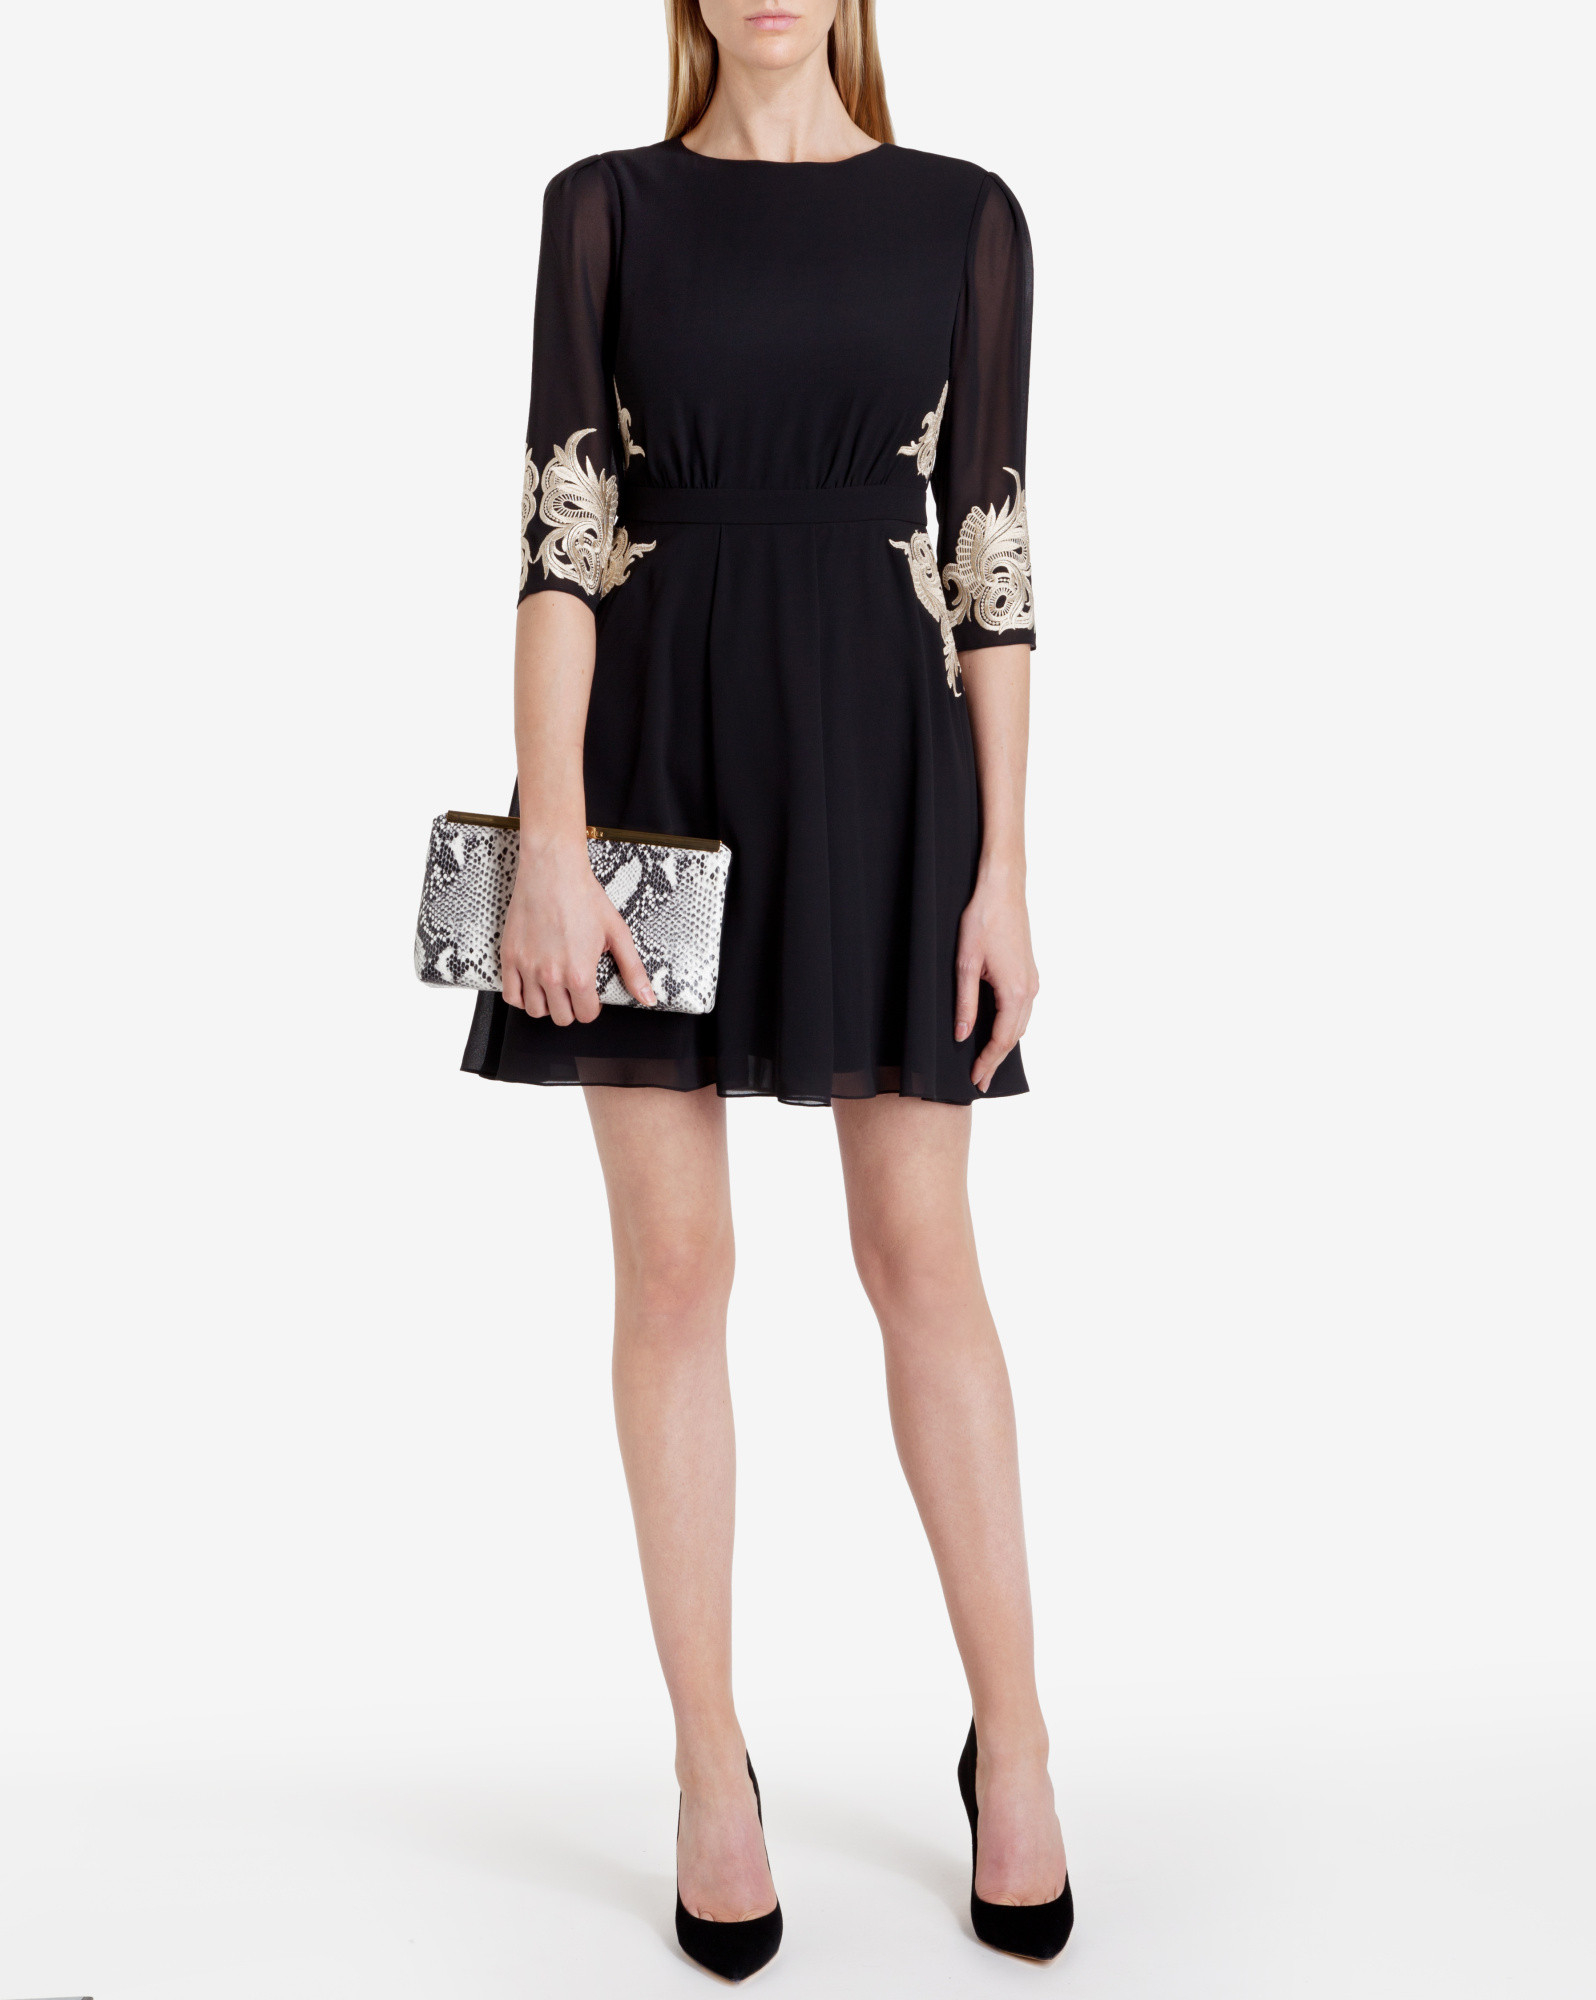 d6667d1f7c913a Lyst - Ted Baker Embroidered Dress in Black